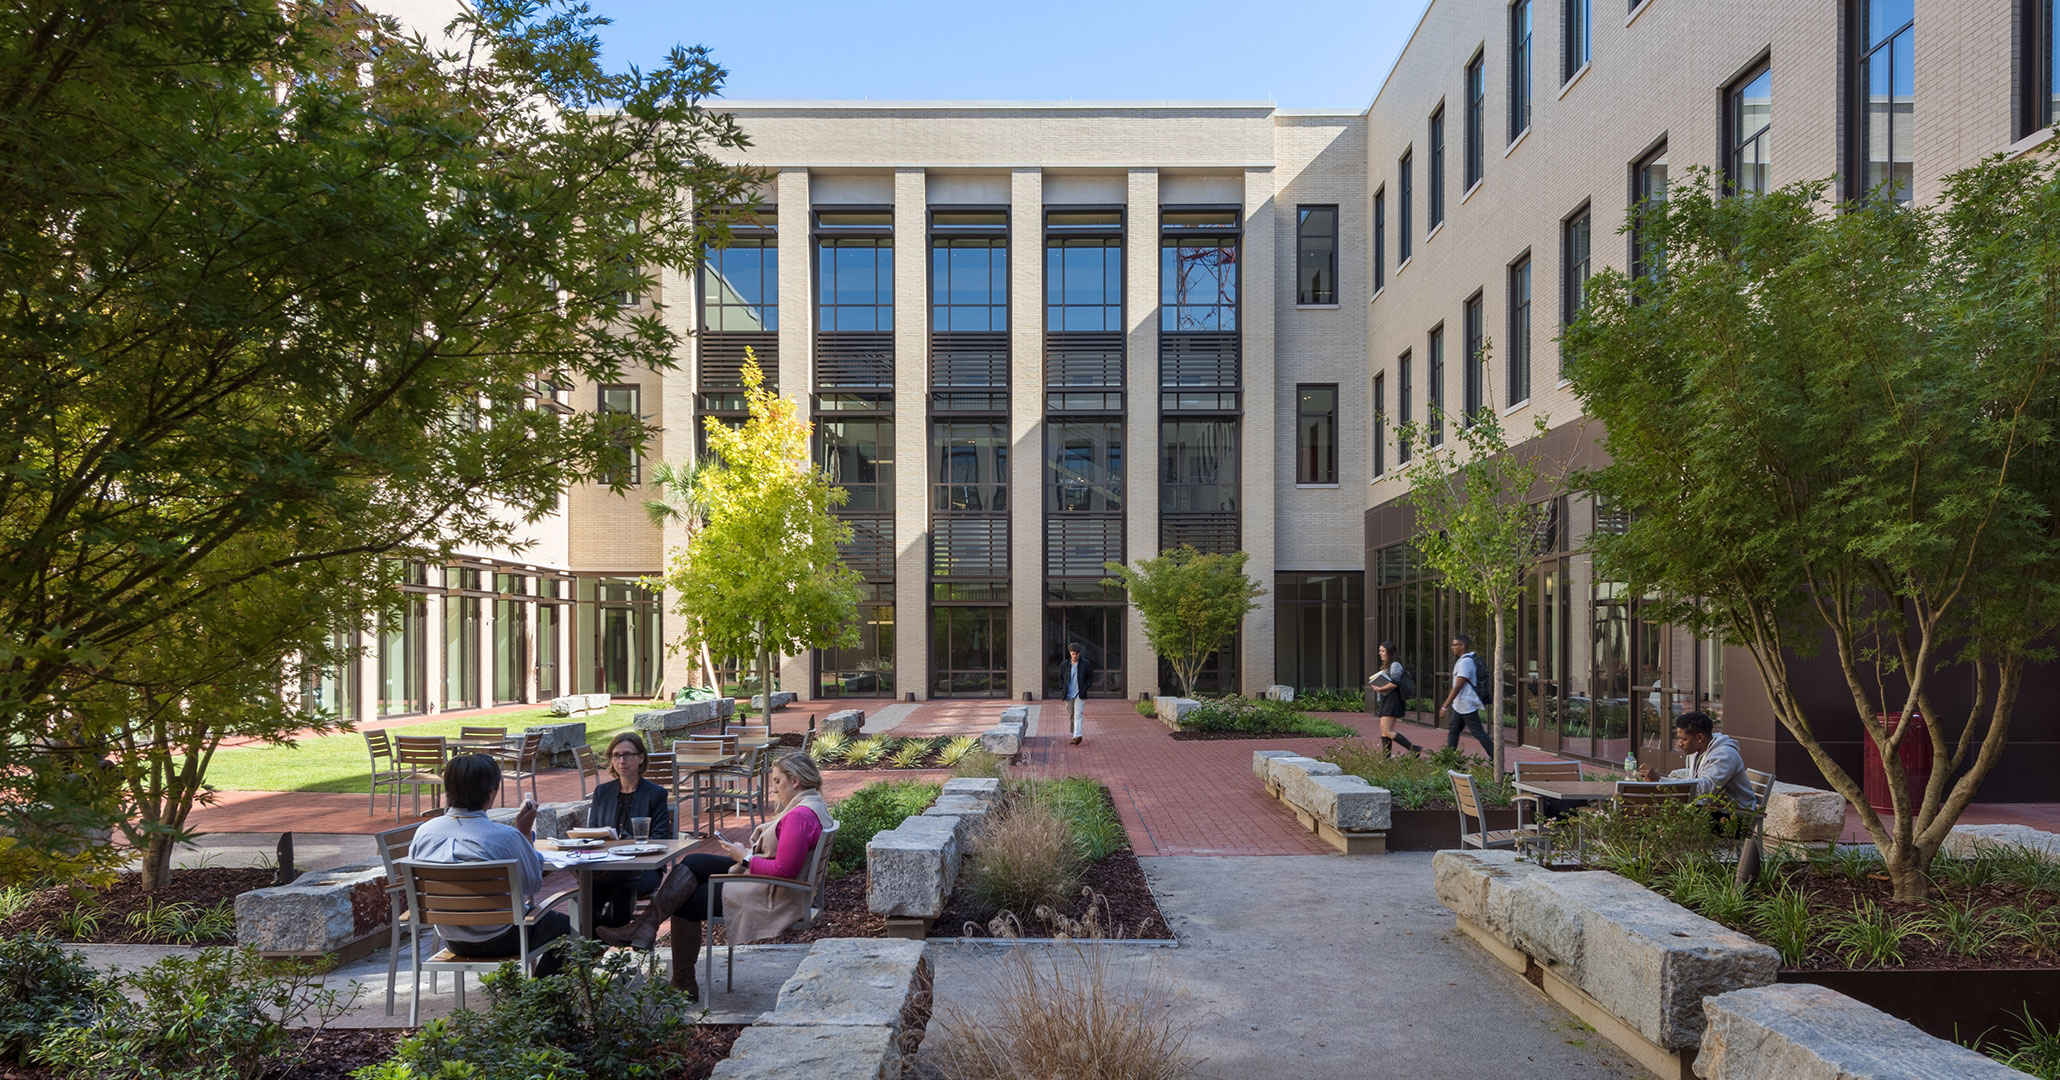 Boudreaux architects created meetings spaces outside to improve student traffic flow at the new Law School.